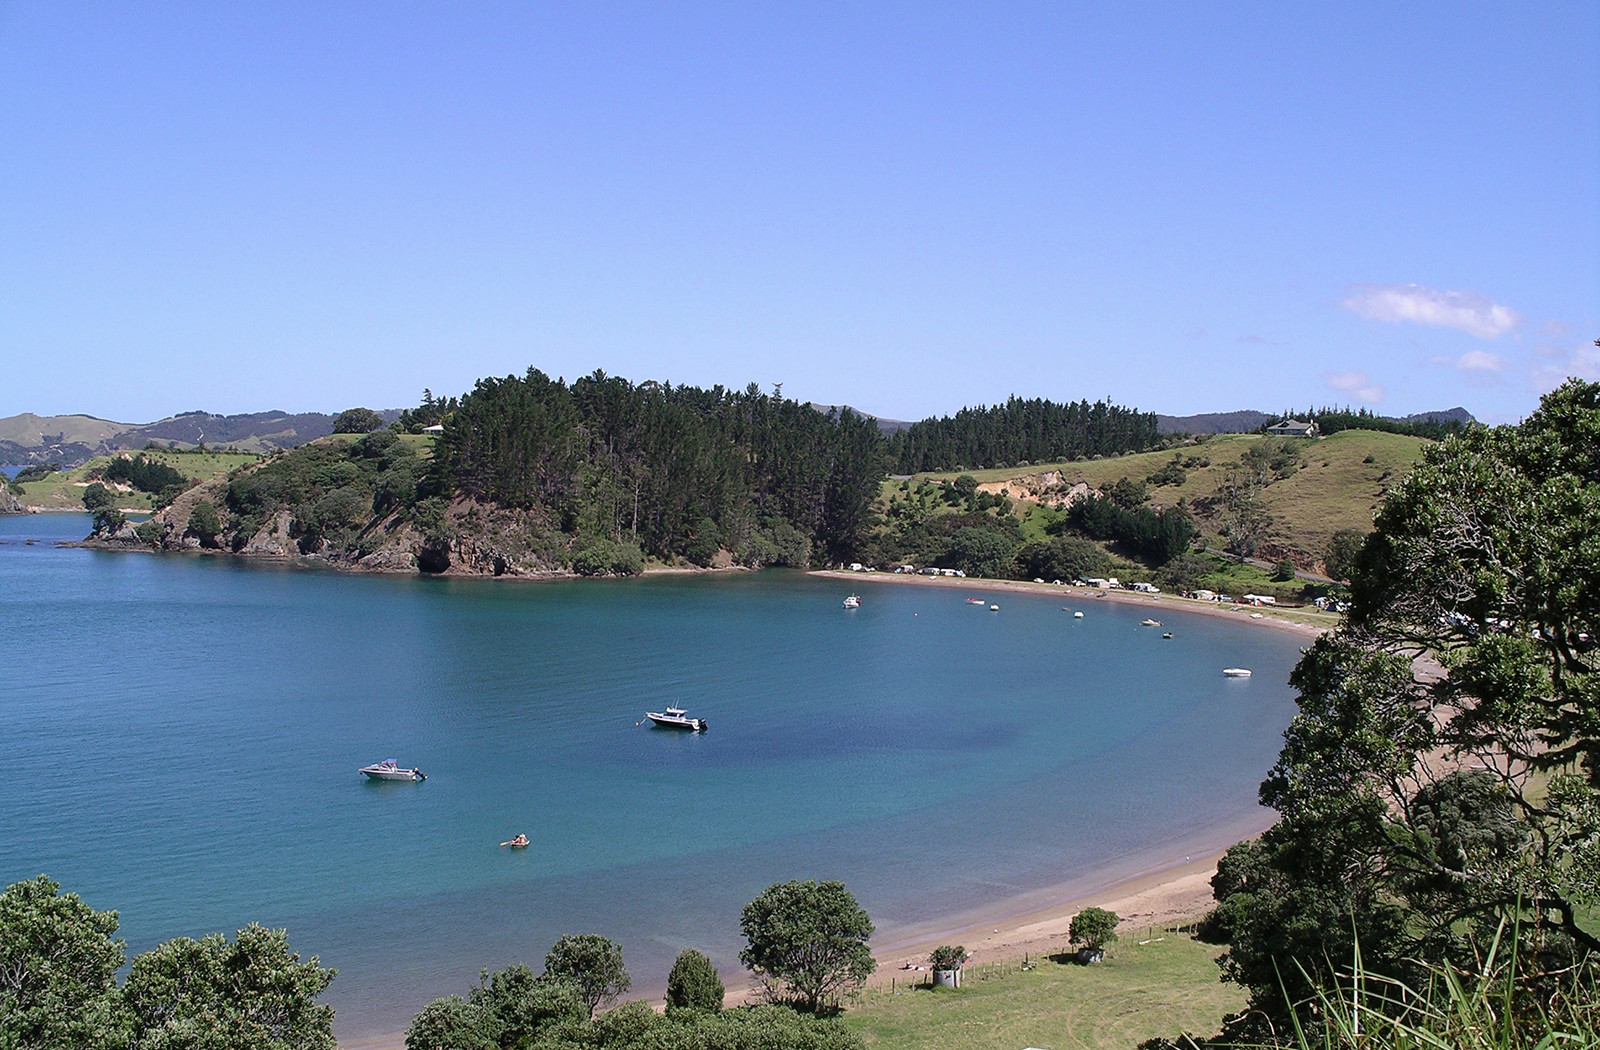 Looking over Mahinepua Beach to Waiwurrie Luxury Bed and Breakfast near the Bay of Islands, Northland